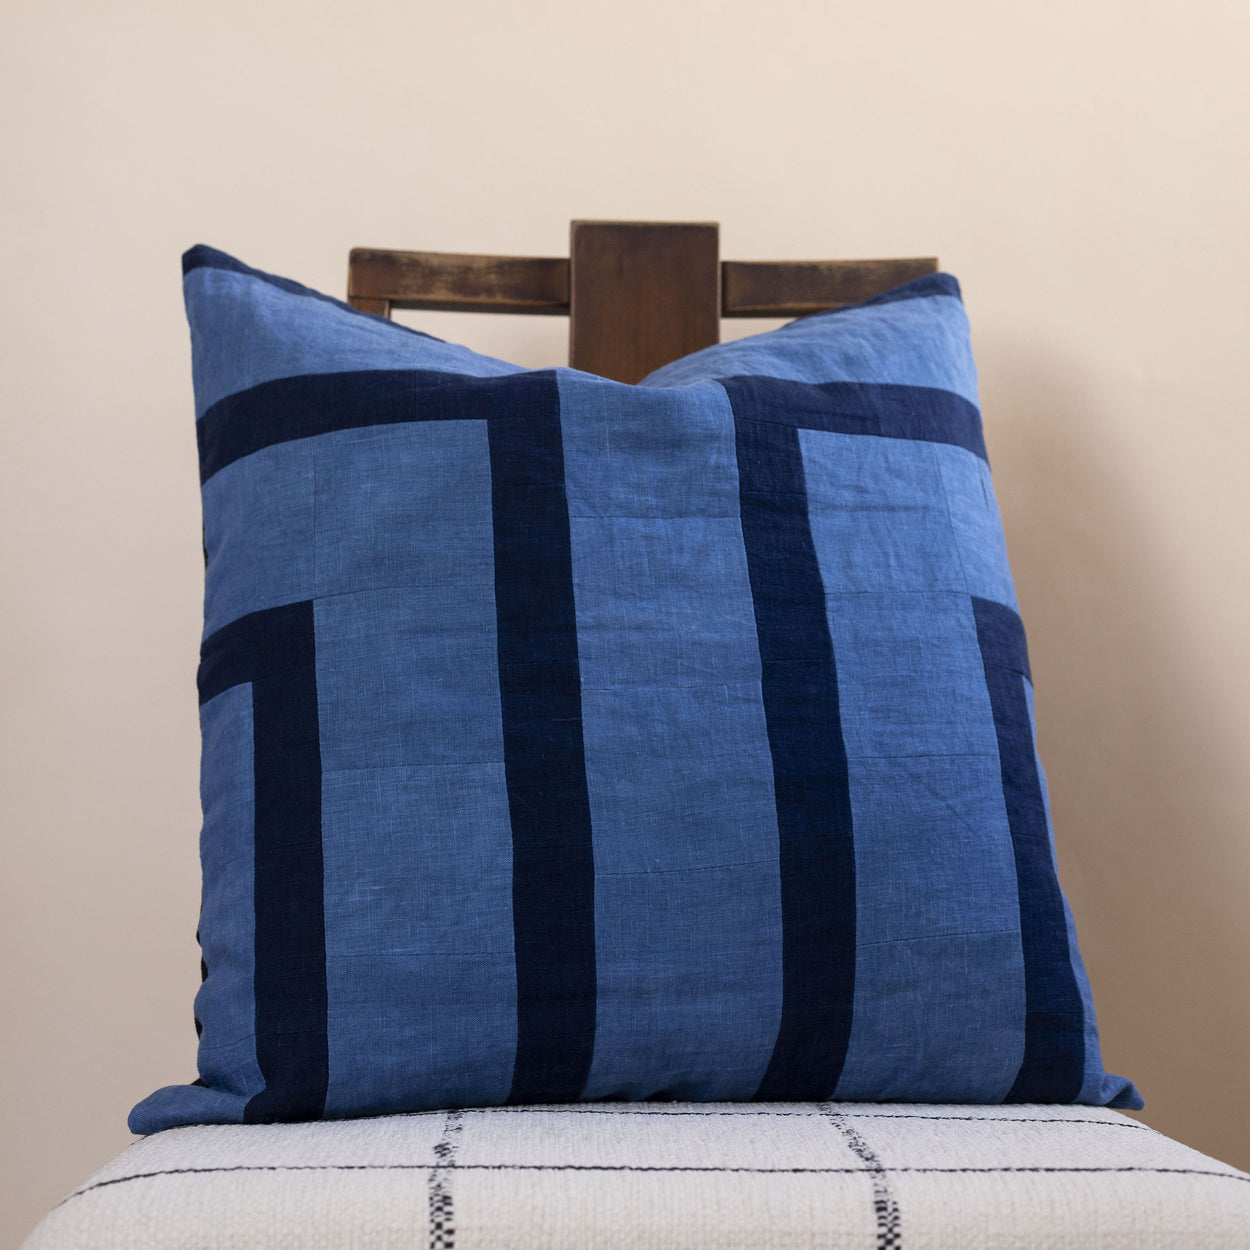 Storyteller Studio - Linen Tito Pillow